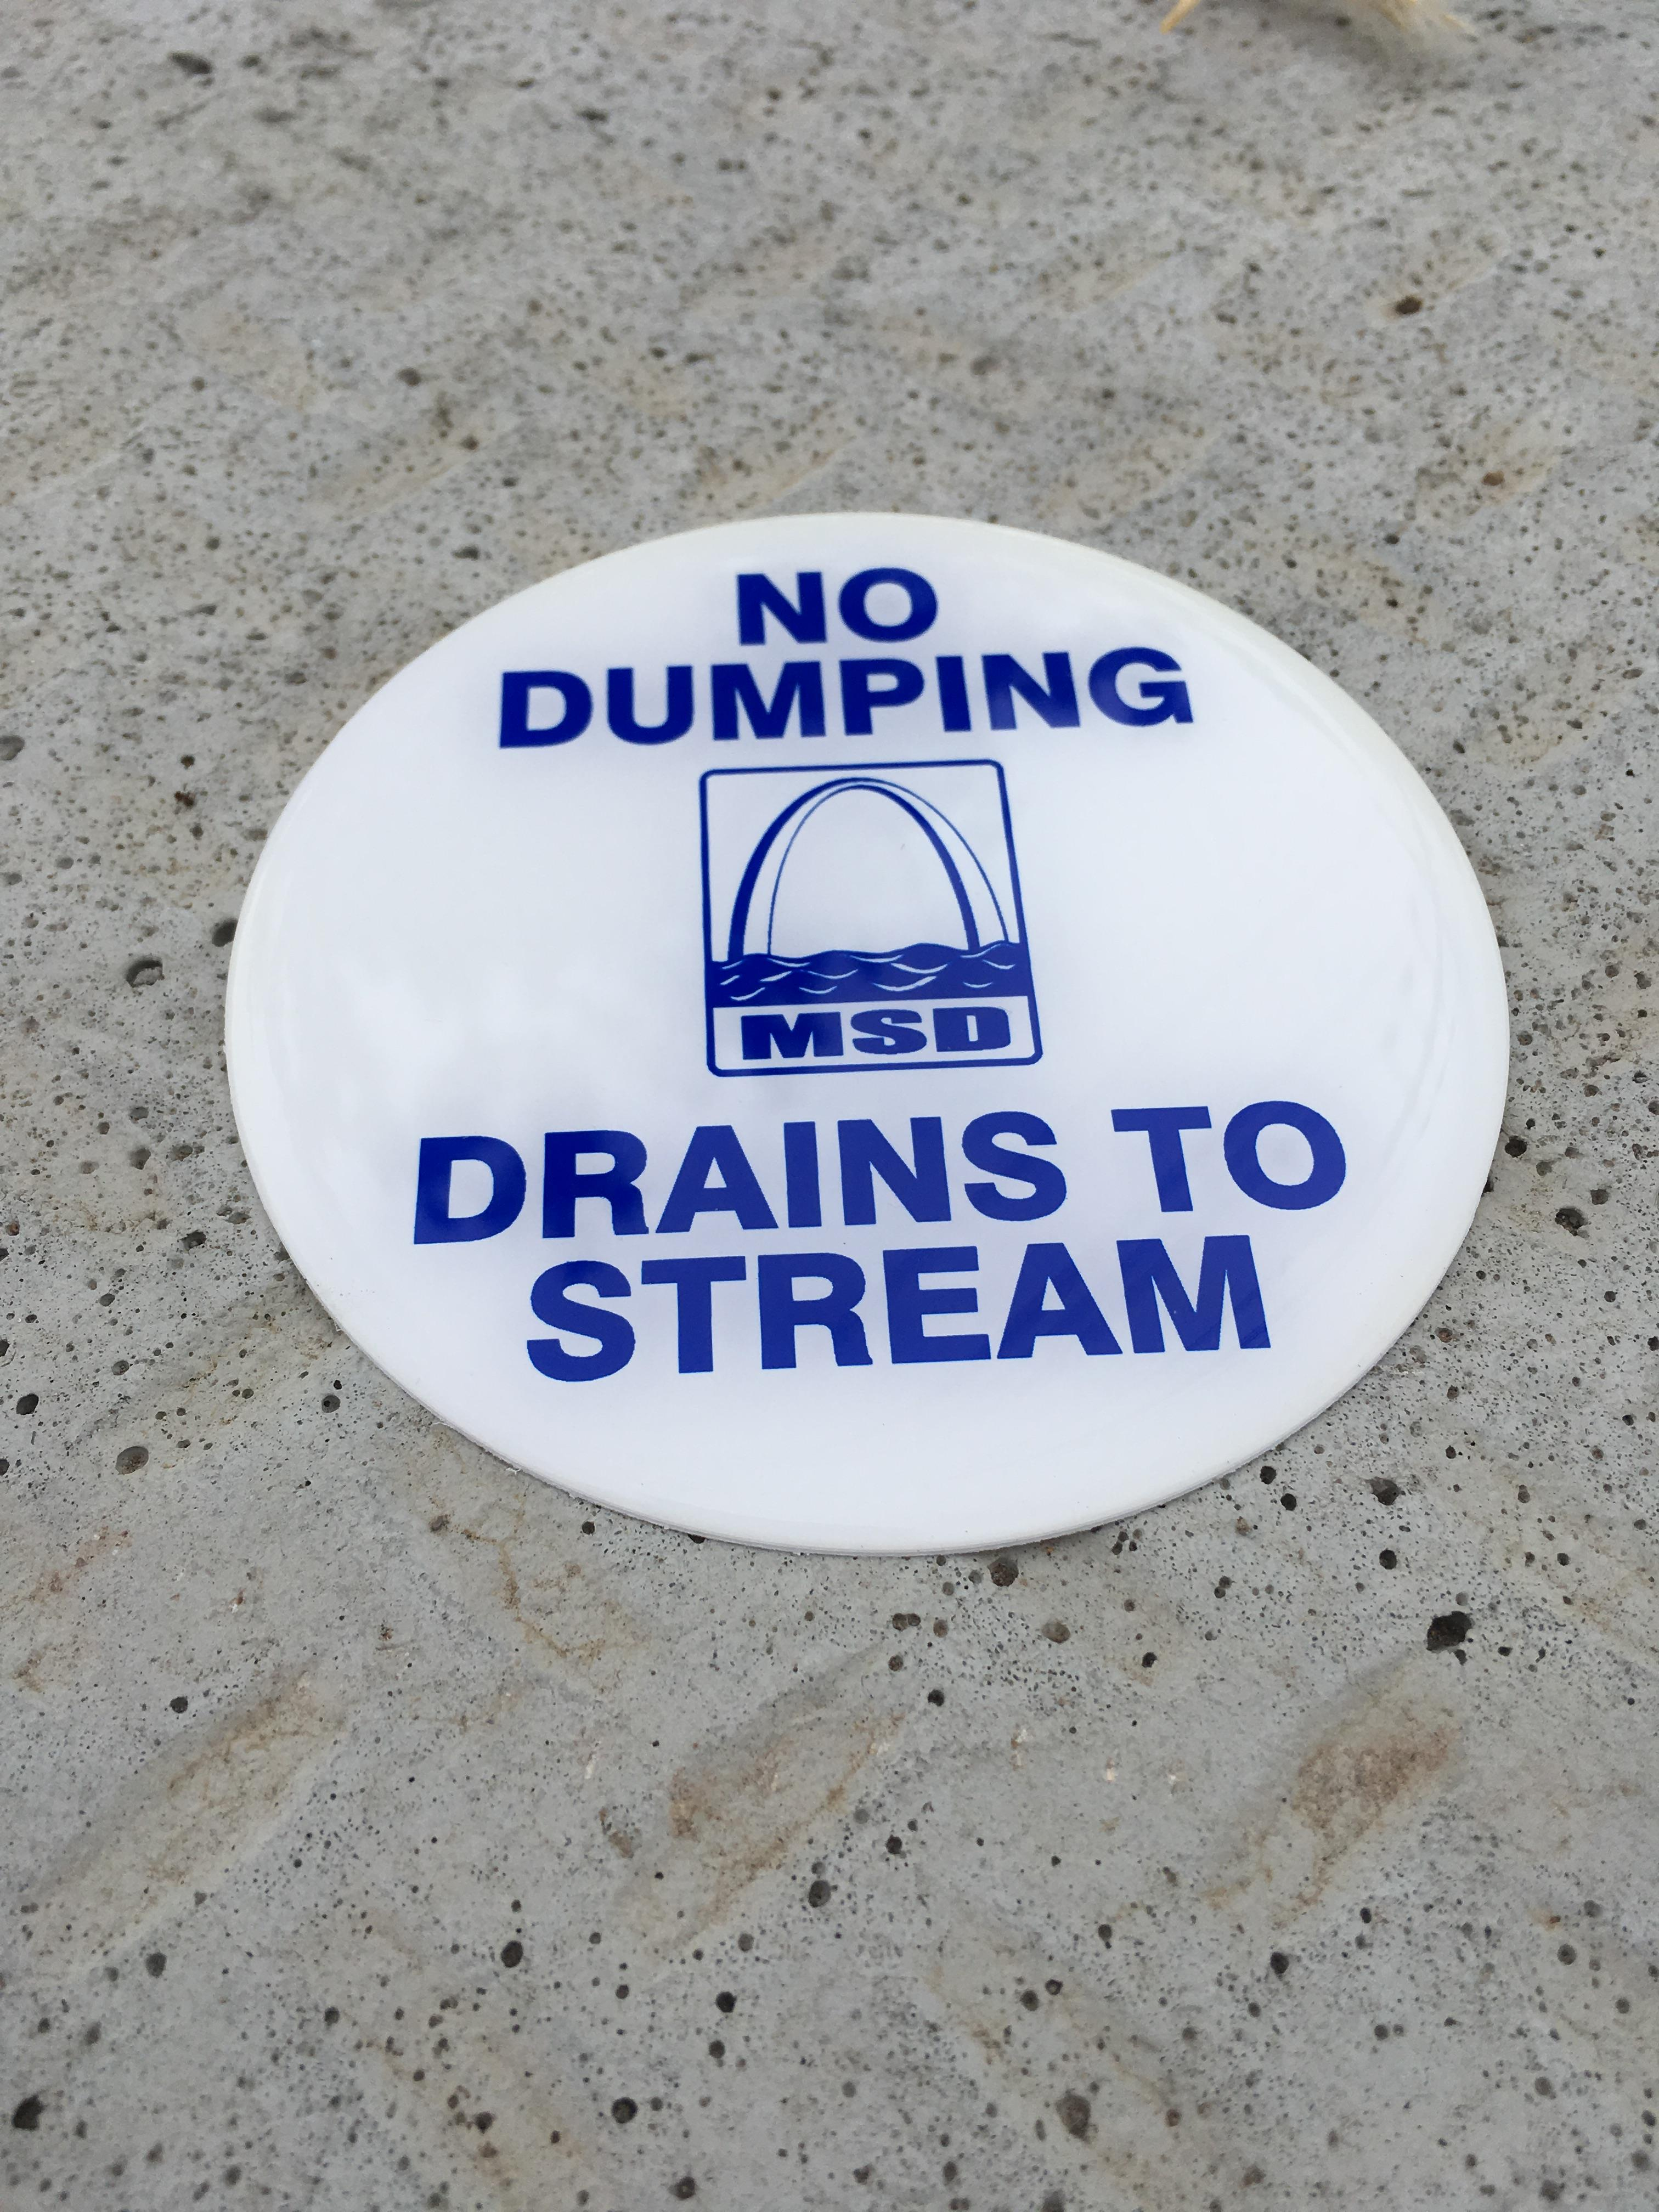 No Dumping--Drains to Stream sign